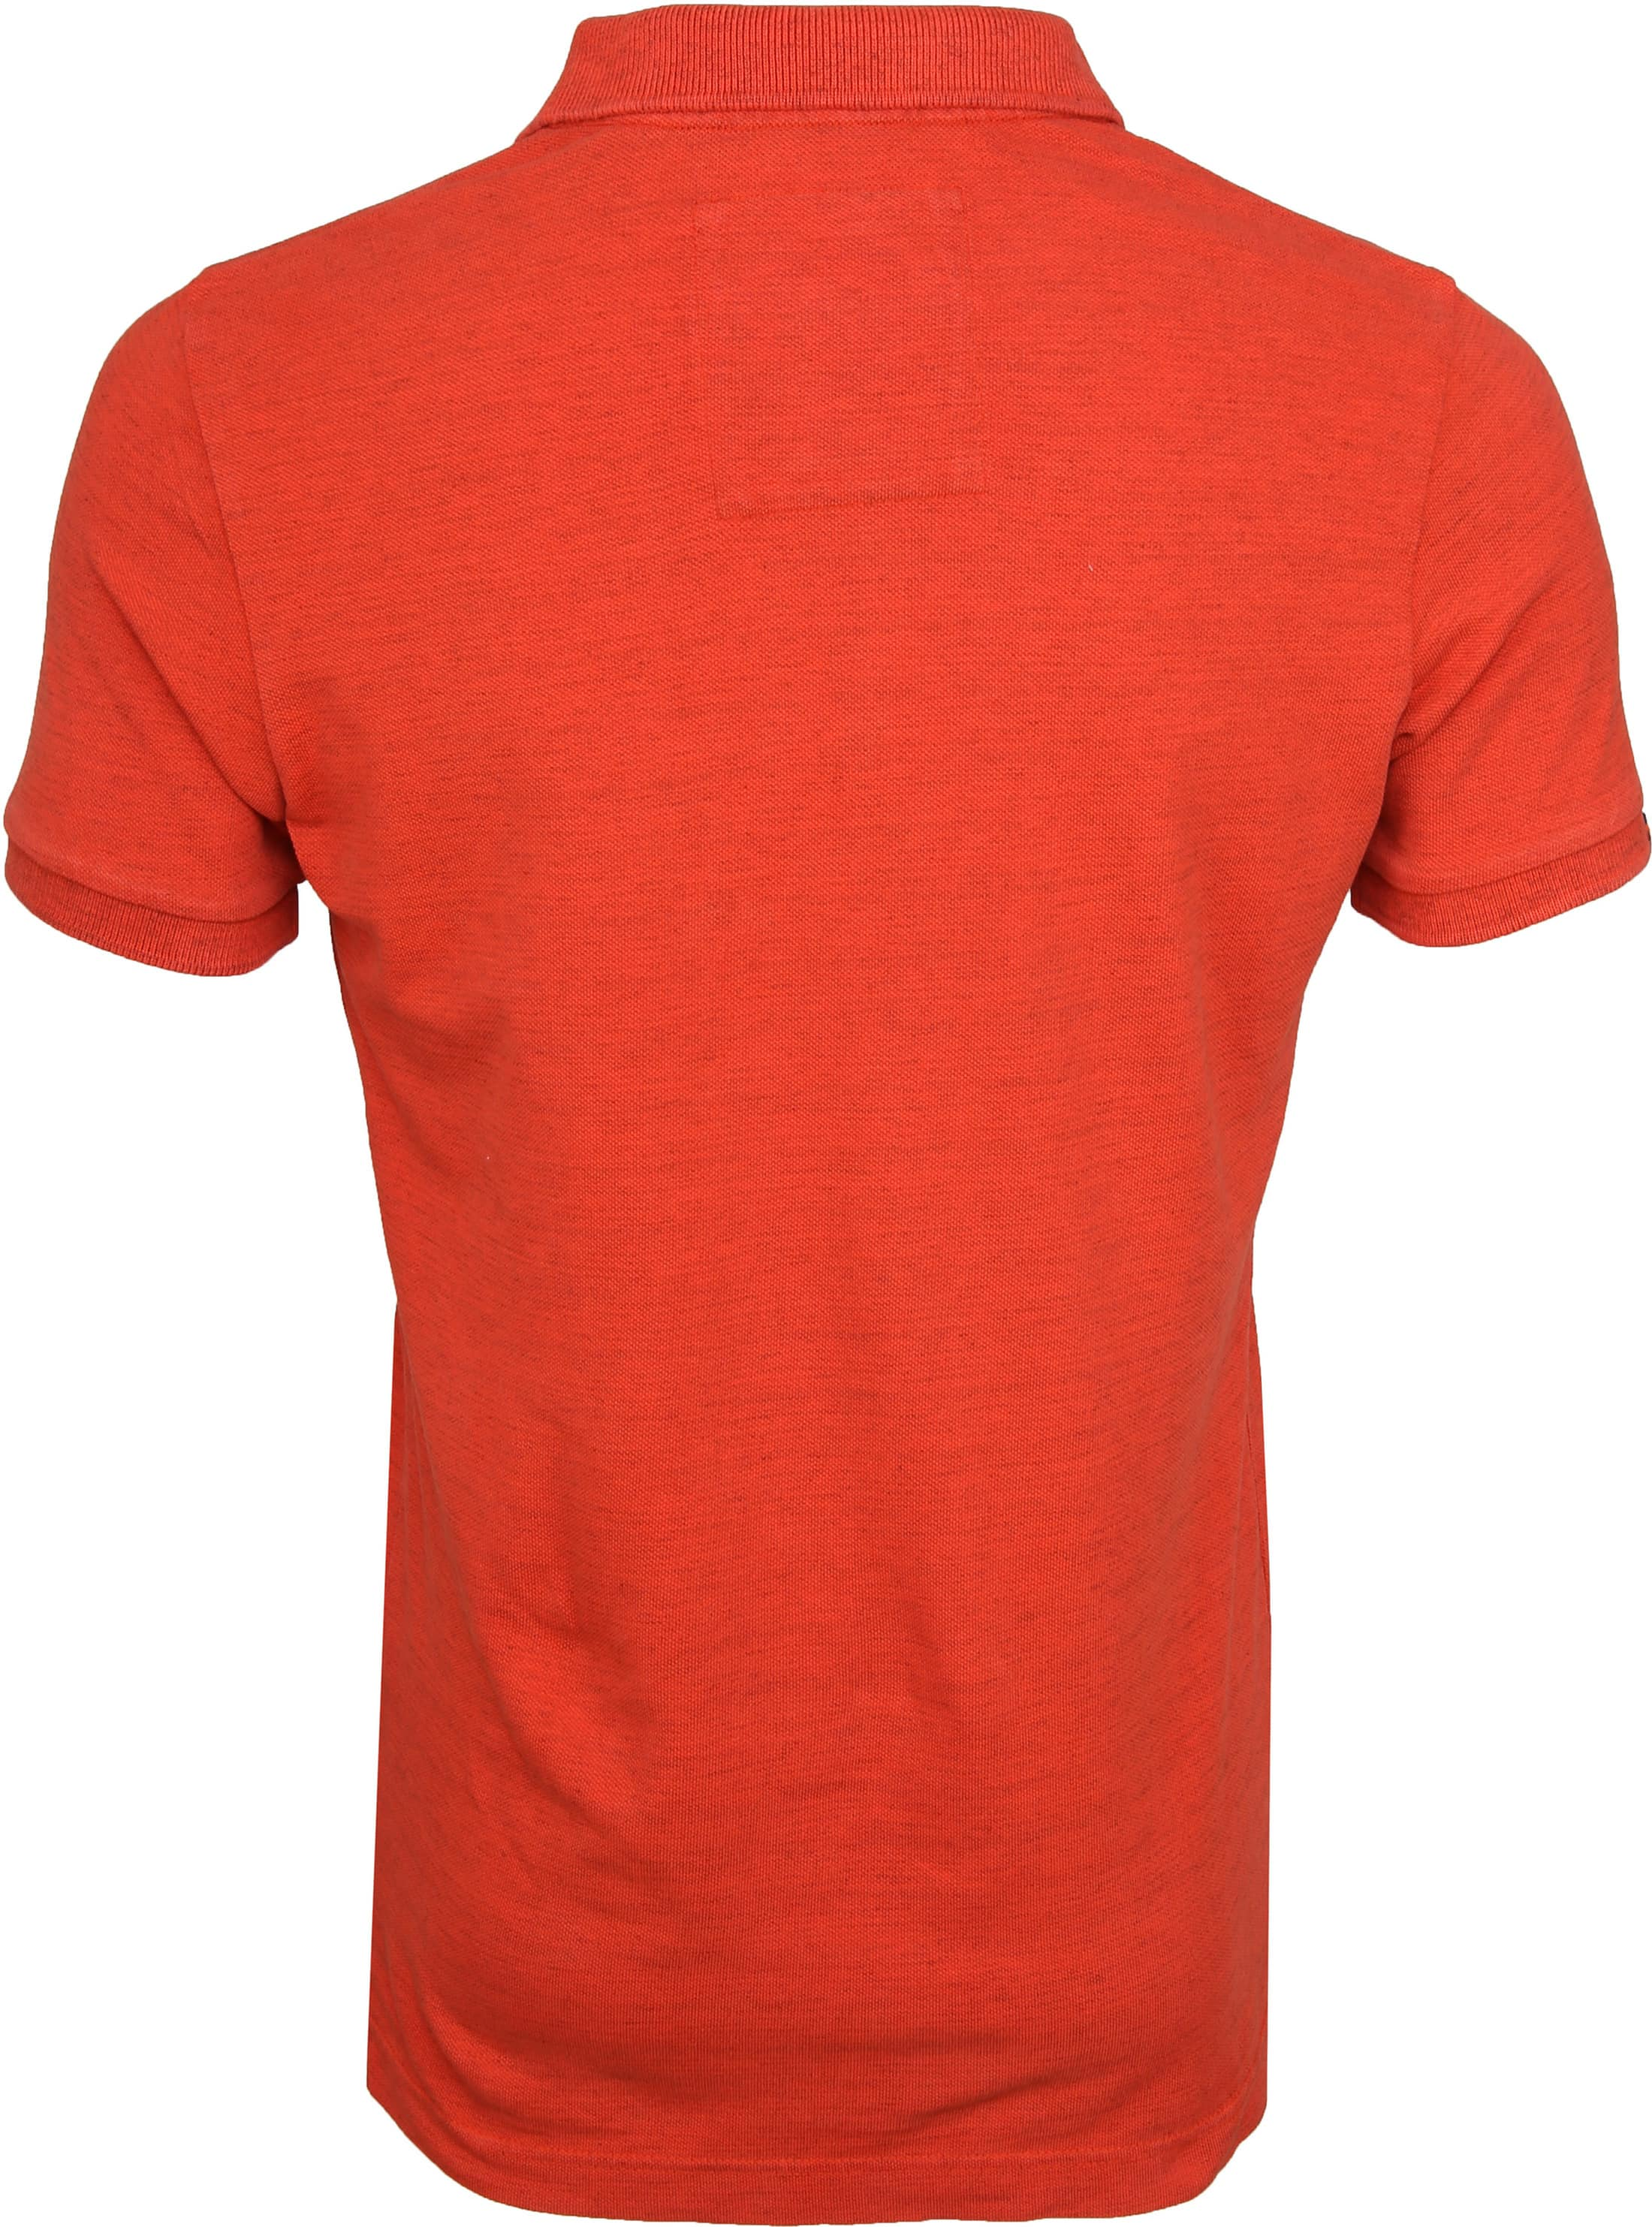 Superdry Premium Polo Orange foto 4